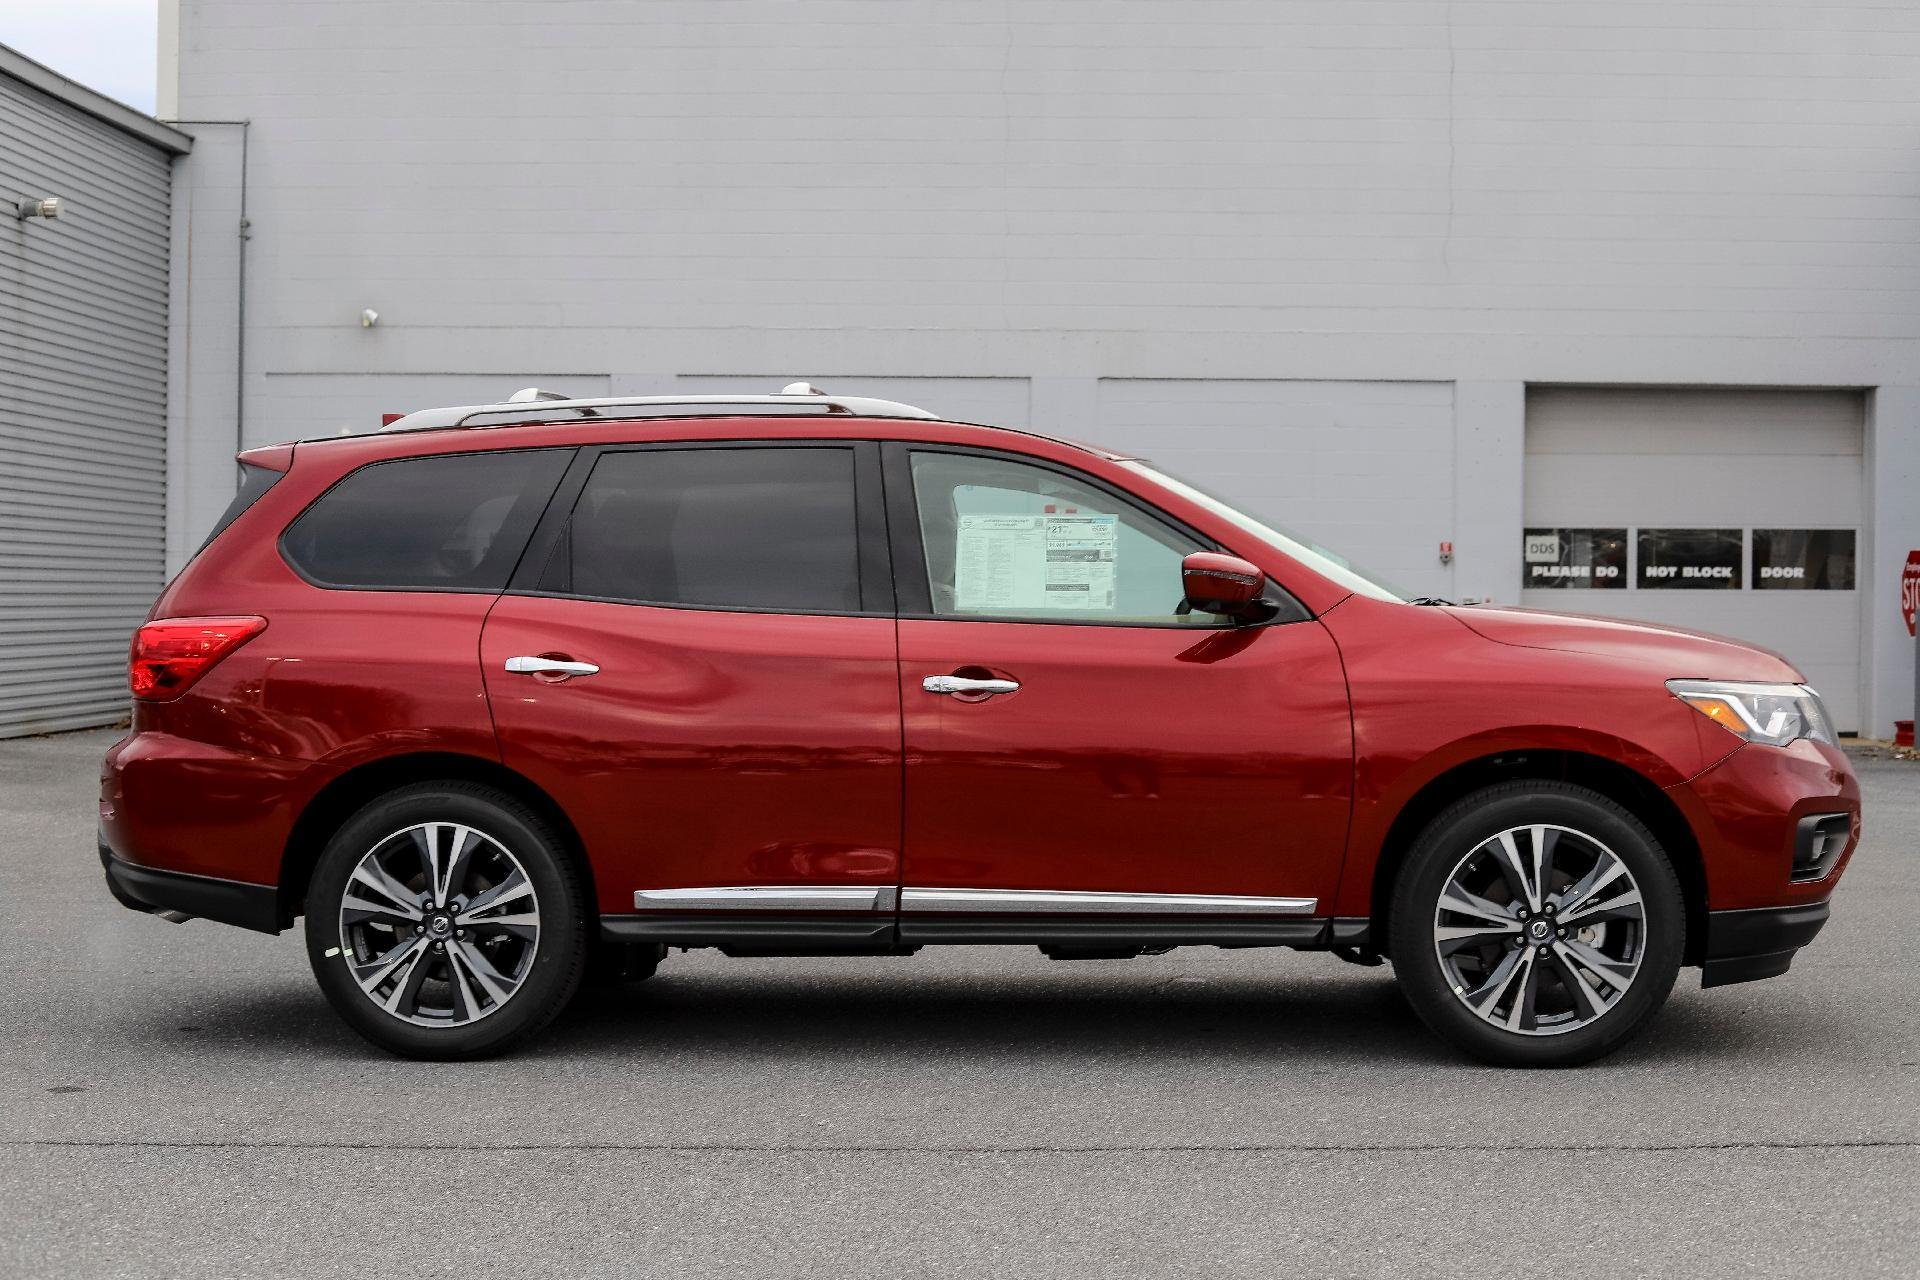 New 2019 Nissan Pathfinder SV SV for sale $36,060 at M and V Leasing in Brooklyn NY 11223 1